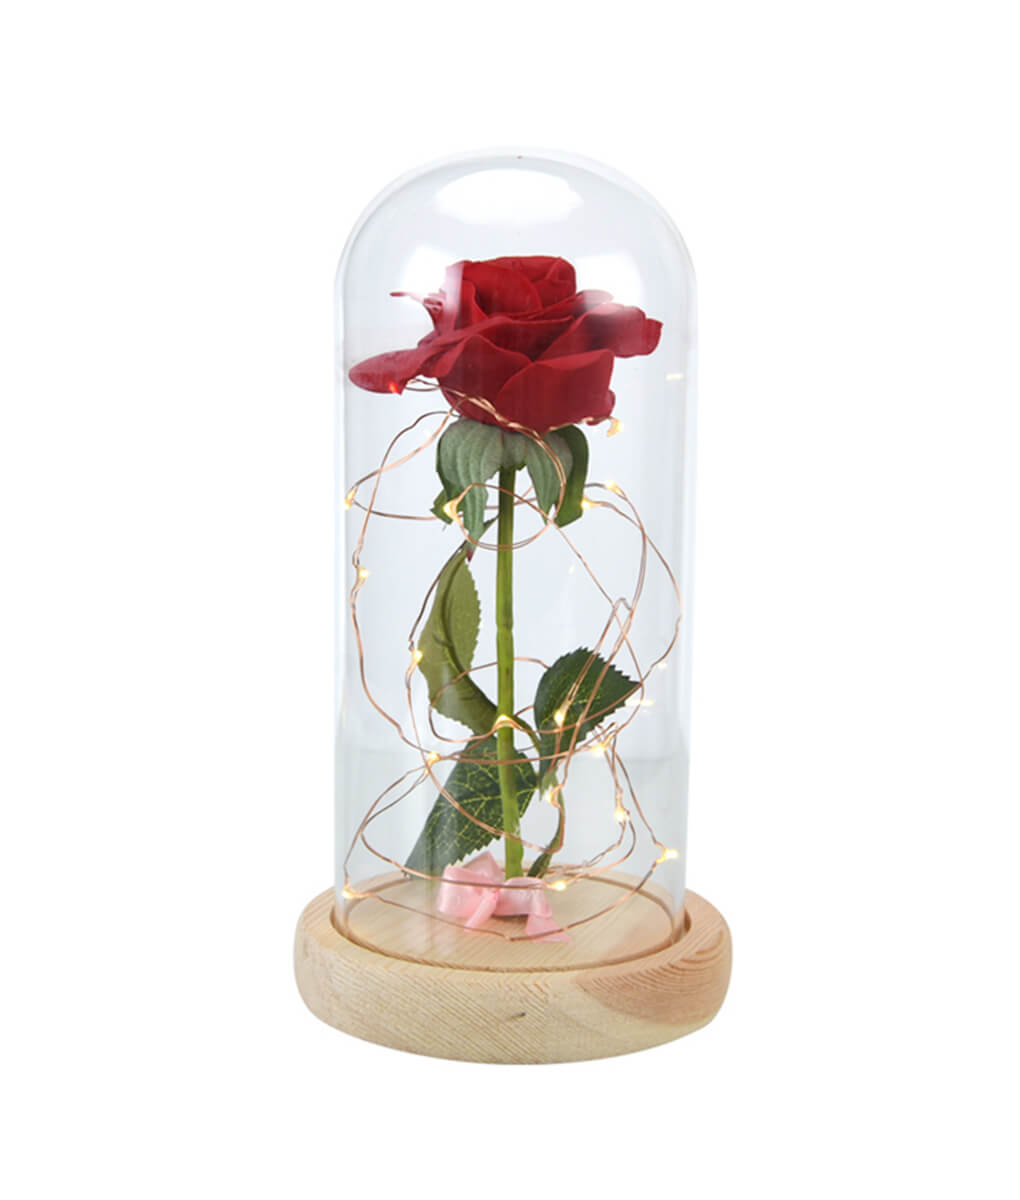 Enchanted Flower Enchanted Flower Rose Lamp Rose rdoeCWxB